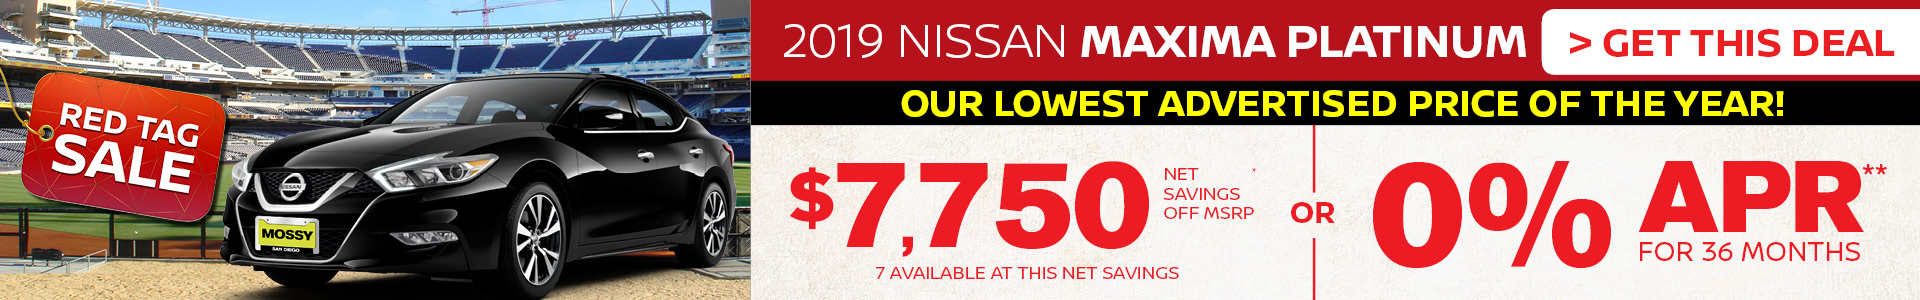 Mossy Nissan - Nissan Maxima $7,750 Off MSRP